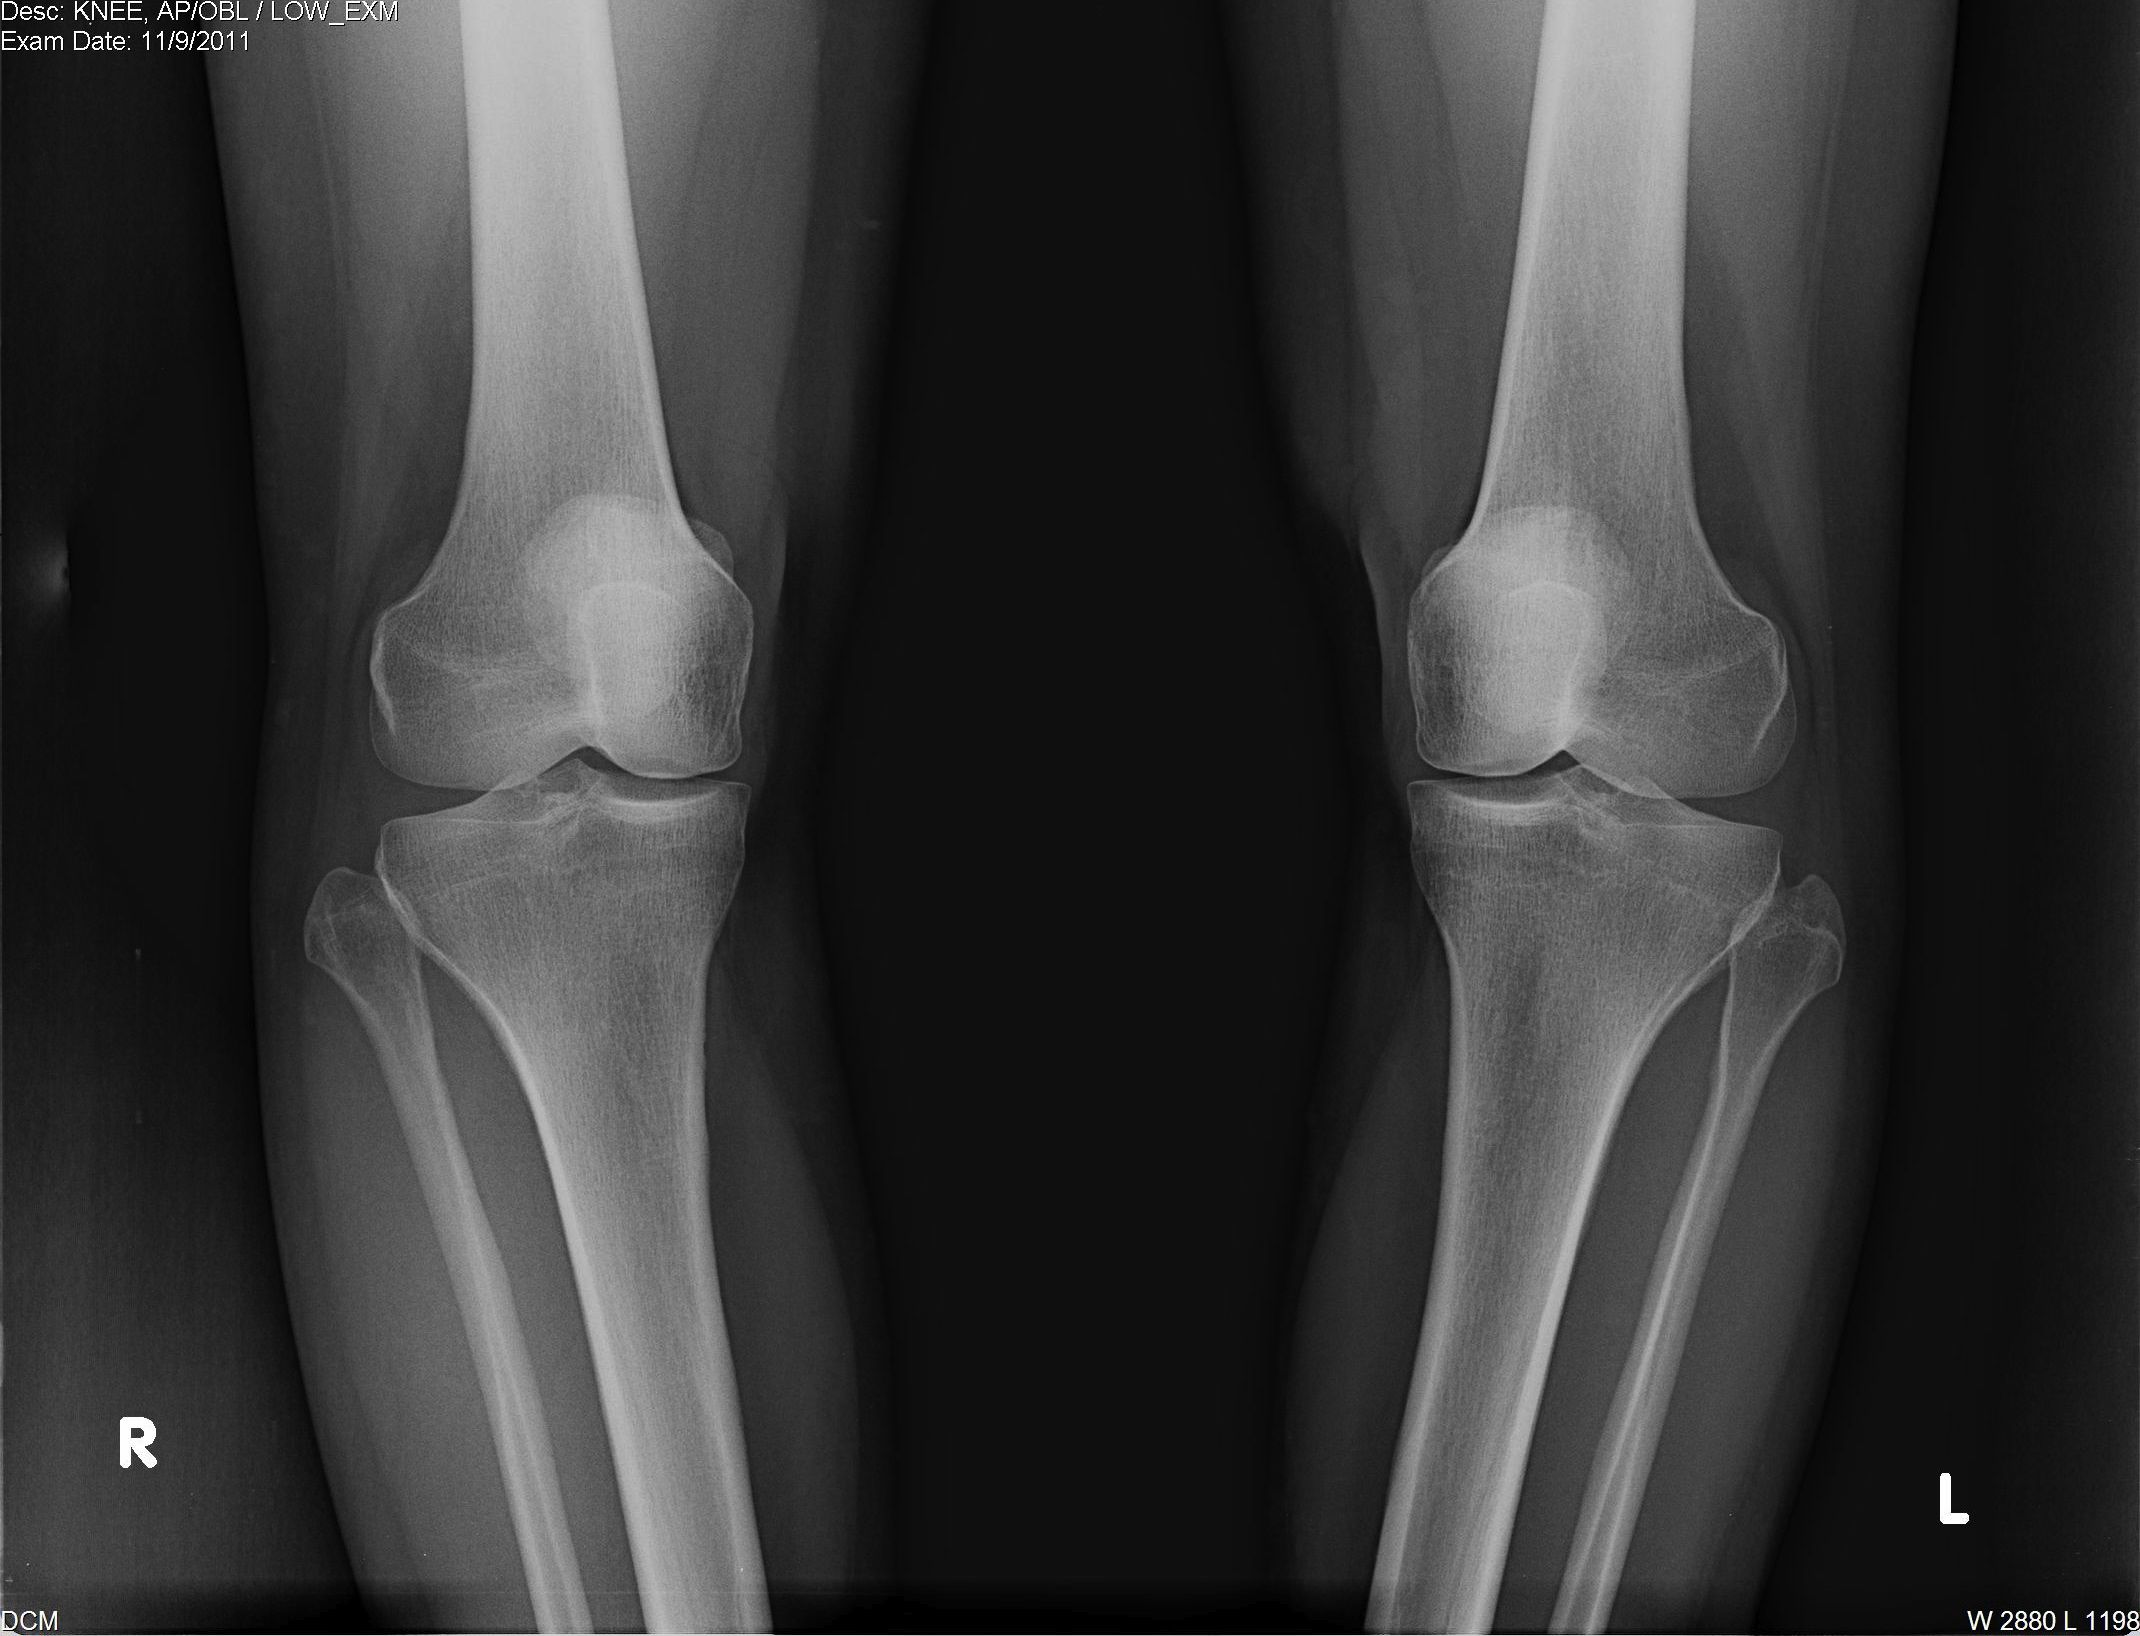 High tibial osteotomy physical therapy - Both